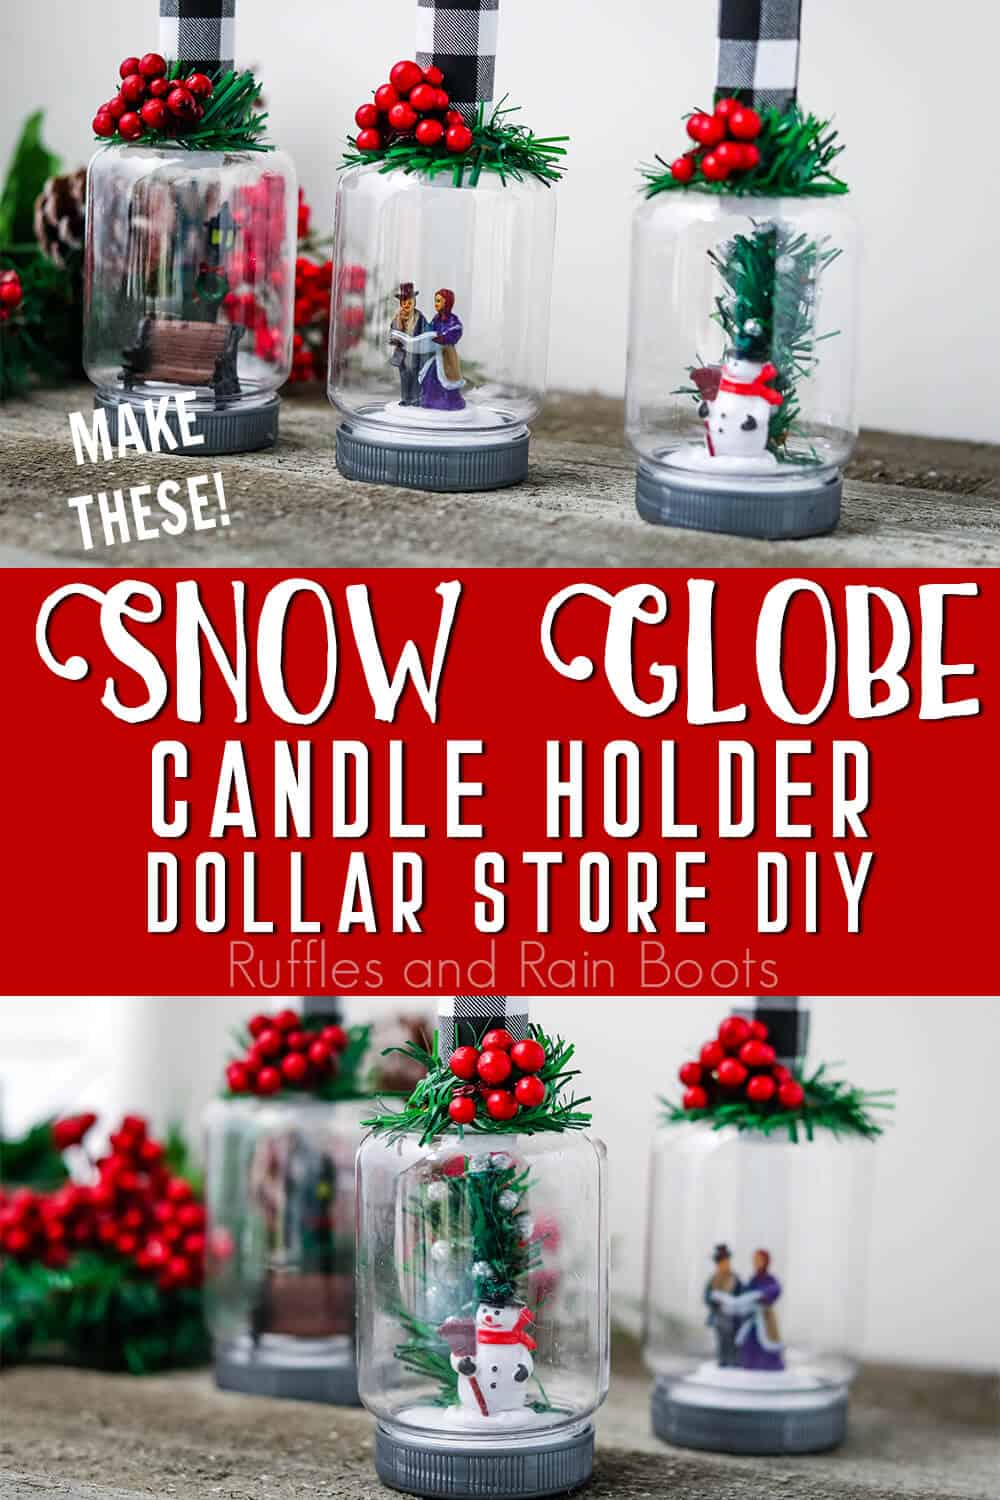 Make This Snow Globe Candle Dollar Store Craft In Minutes